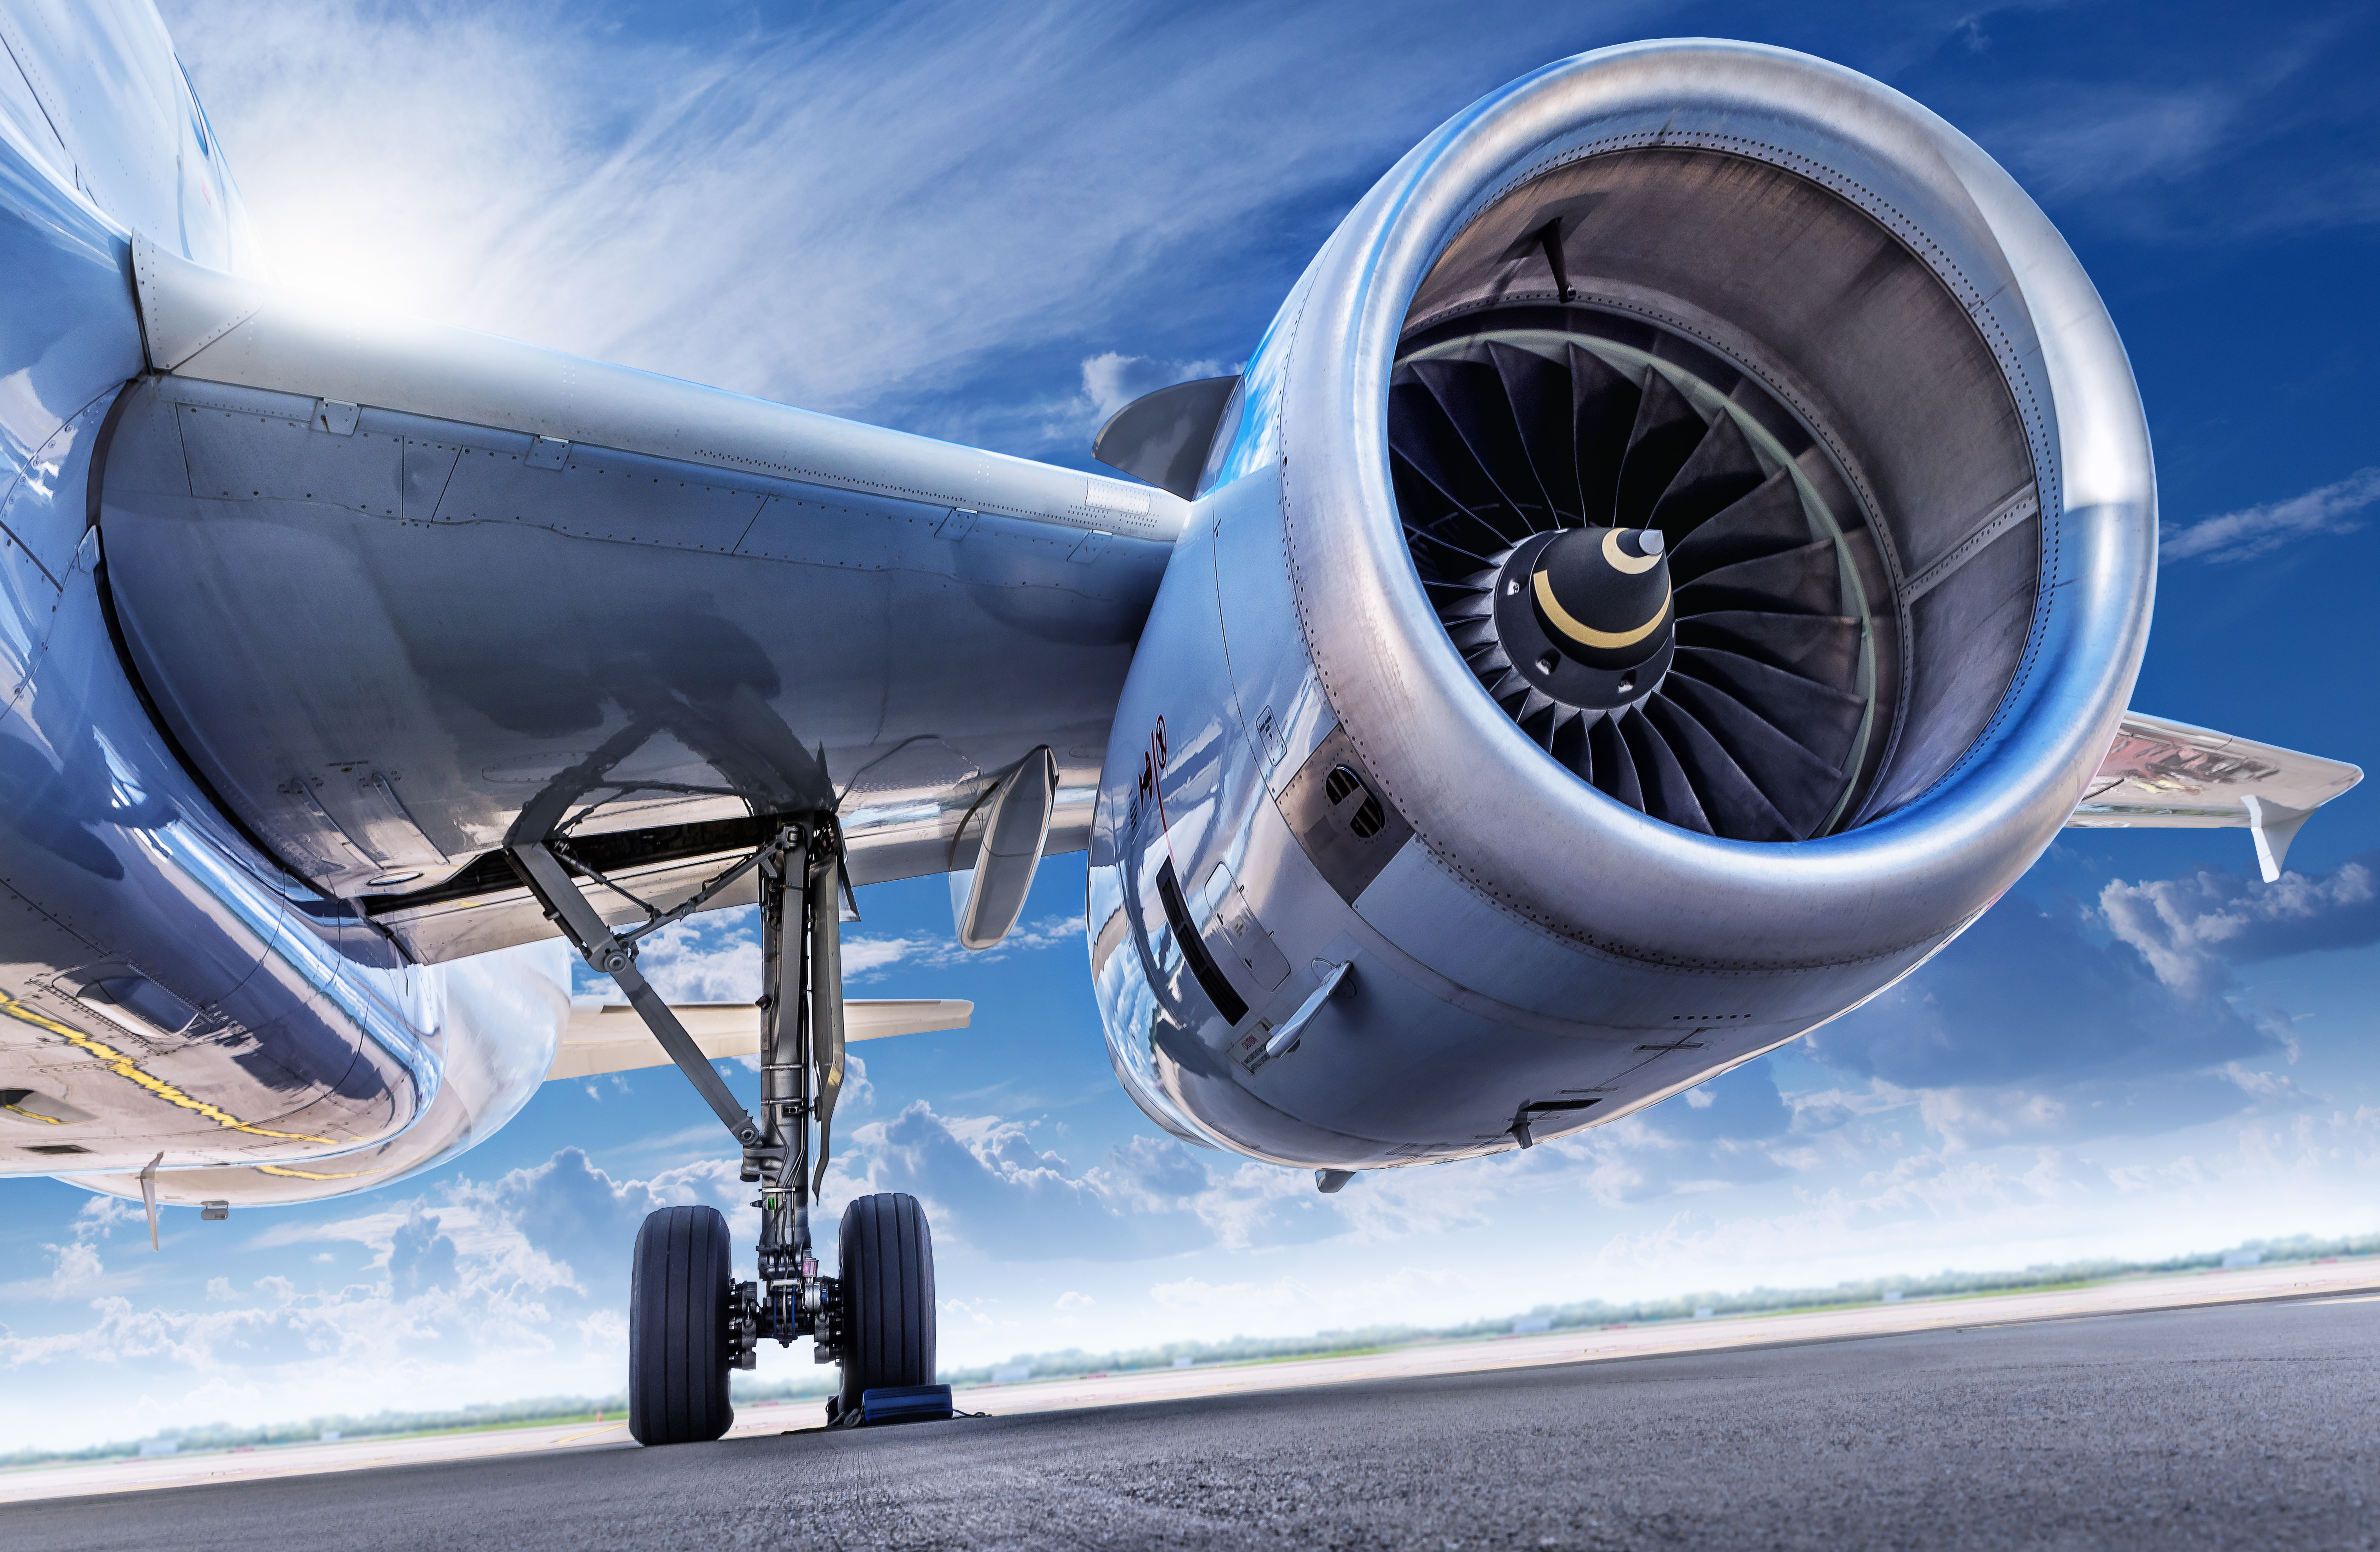 What are some recent advances in high-temperature materials for jet engines?